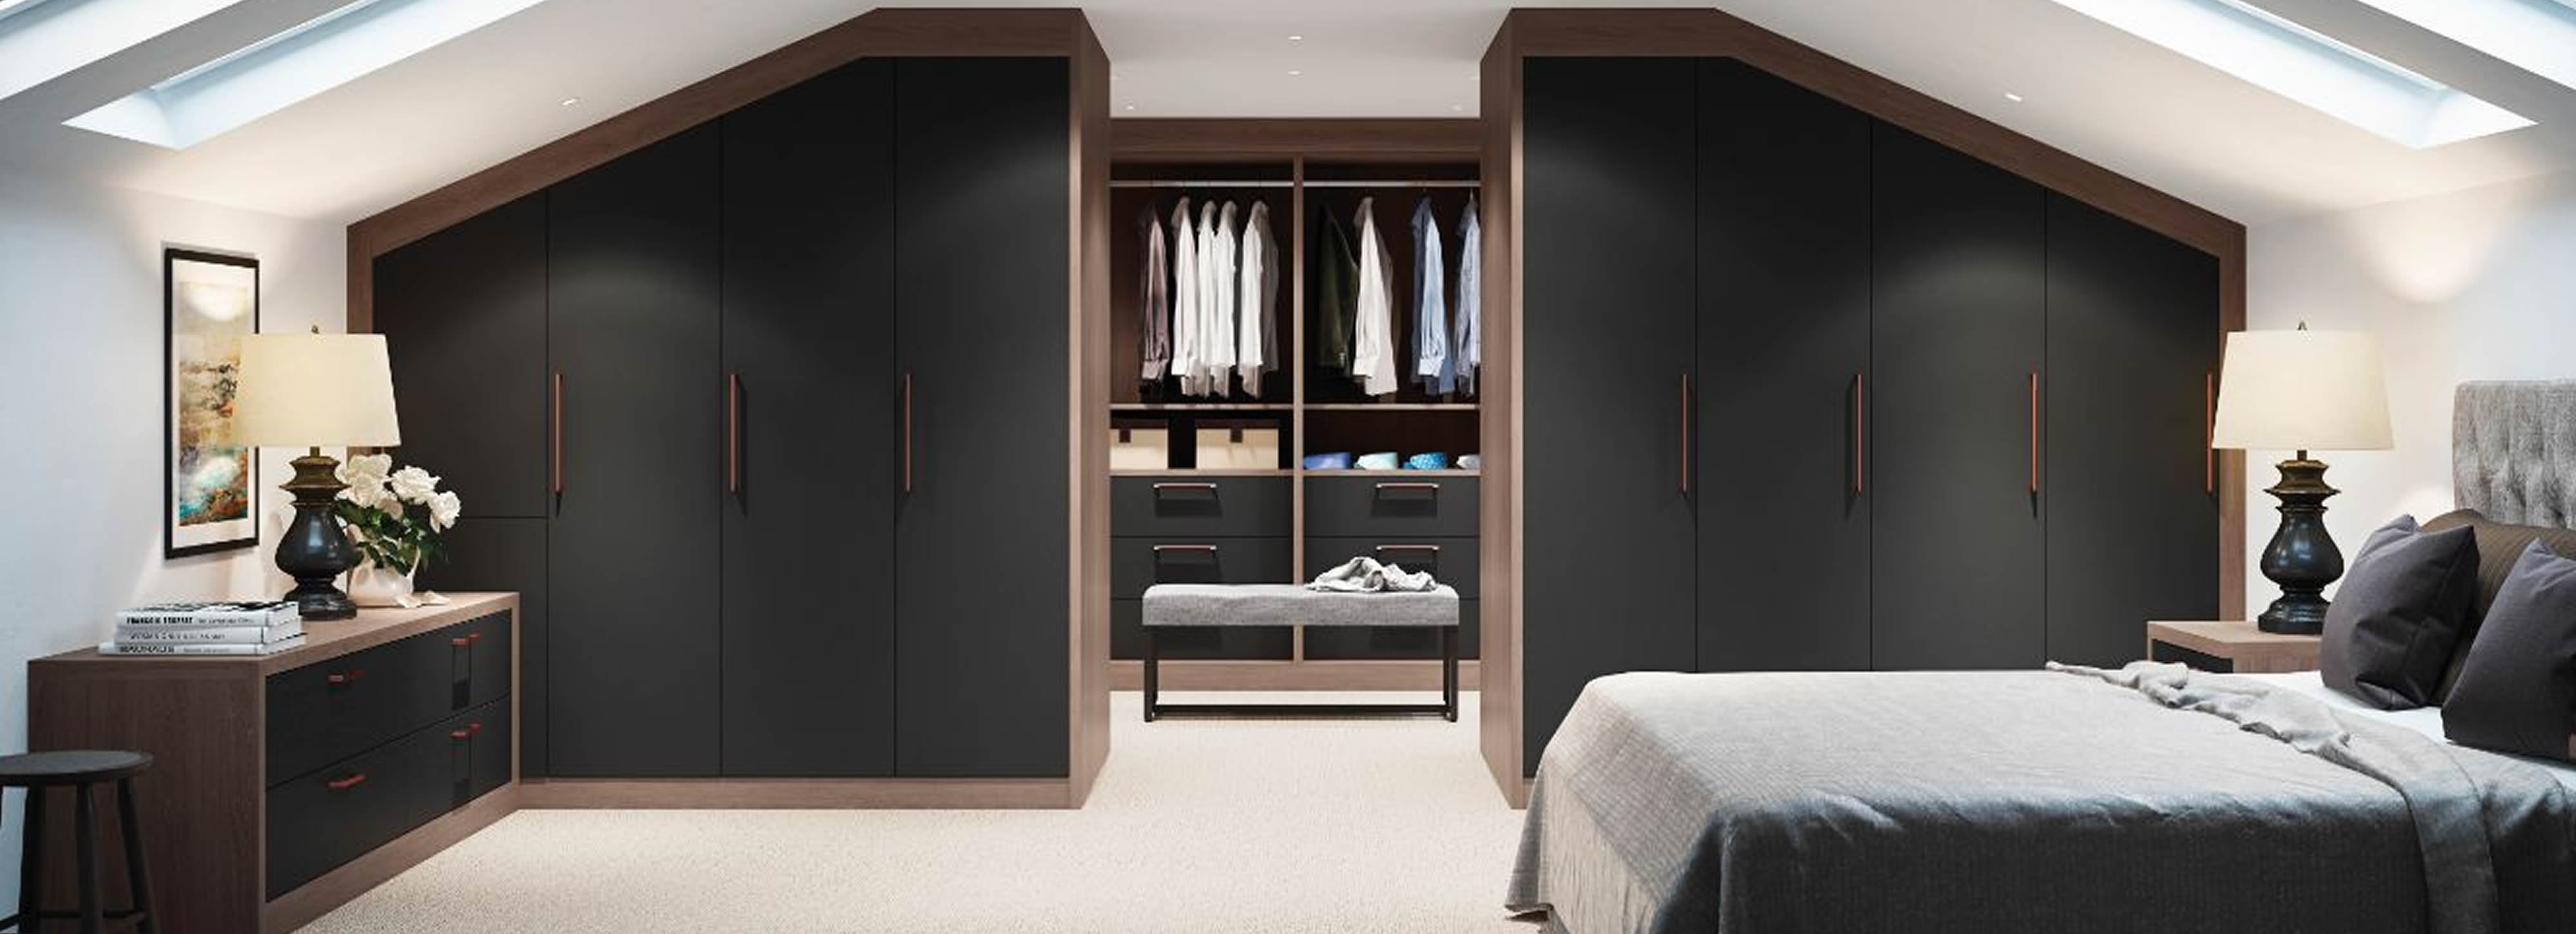 finest selection c0ecc 98916 Fitted Bedroom Wardrobes - design & install, Surrey ...